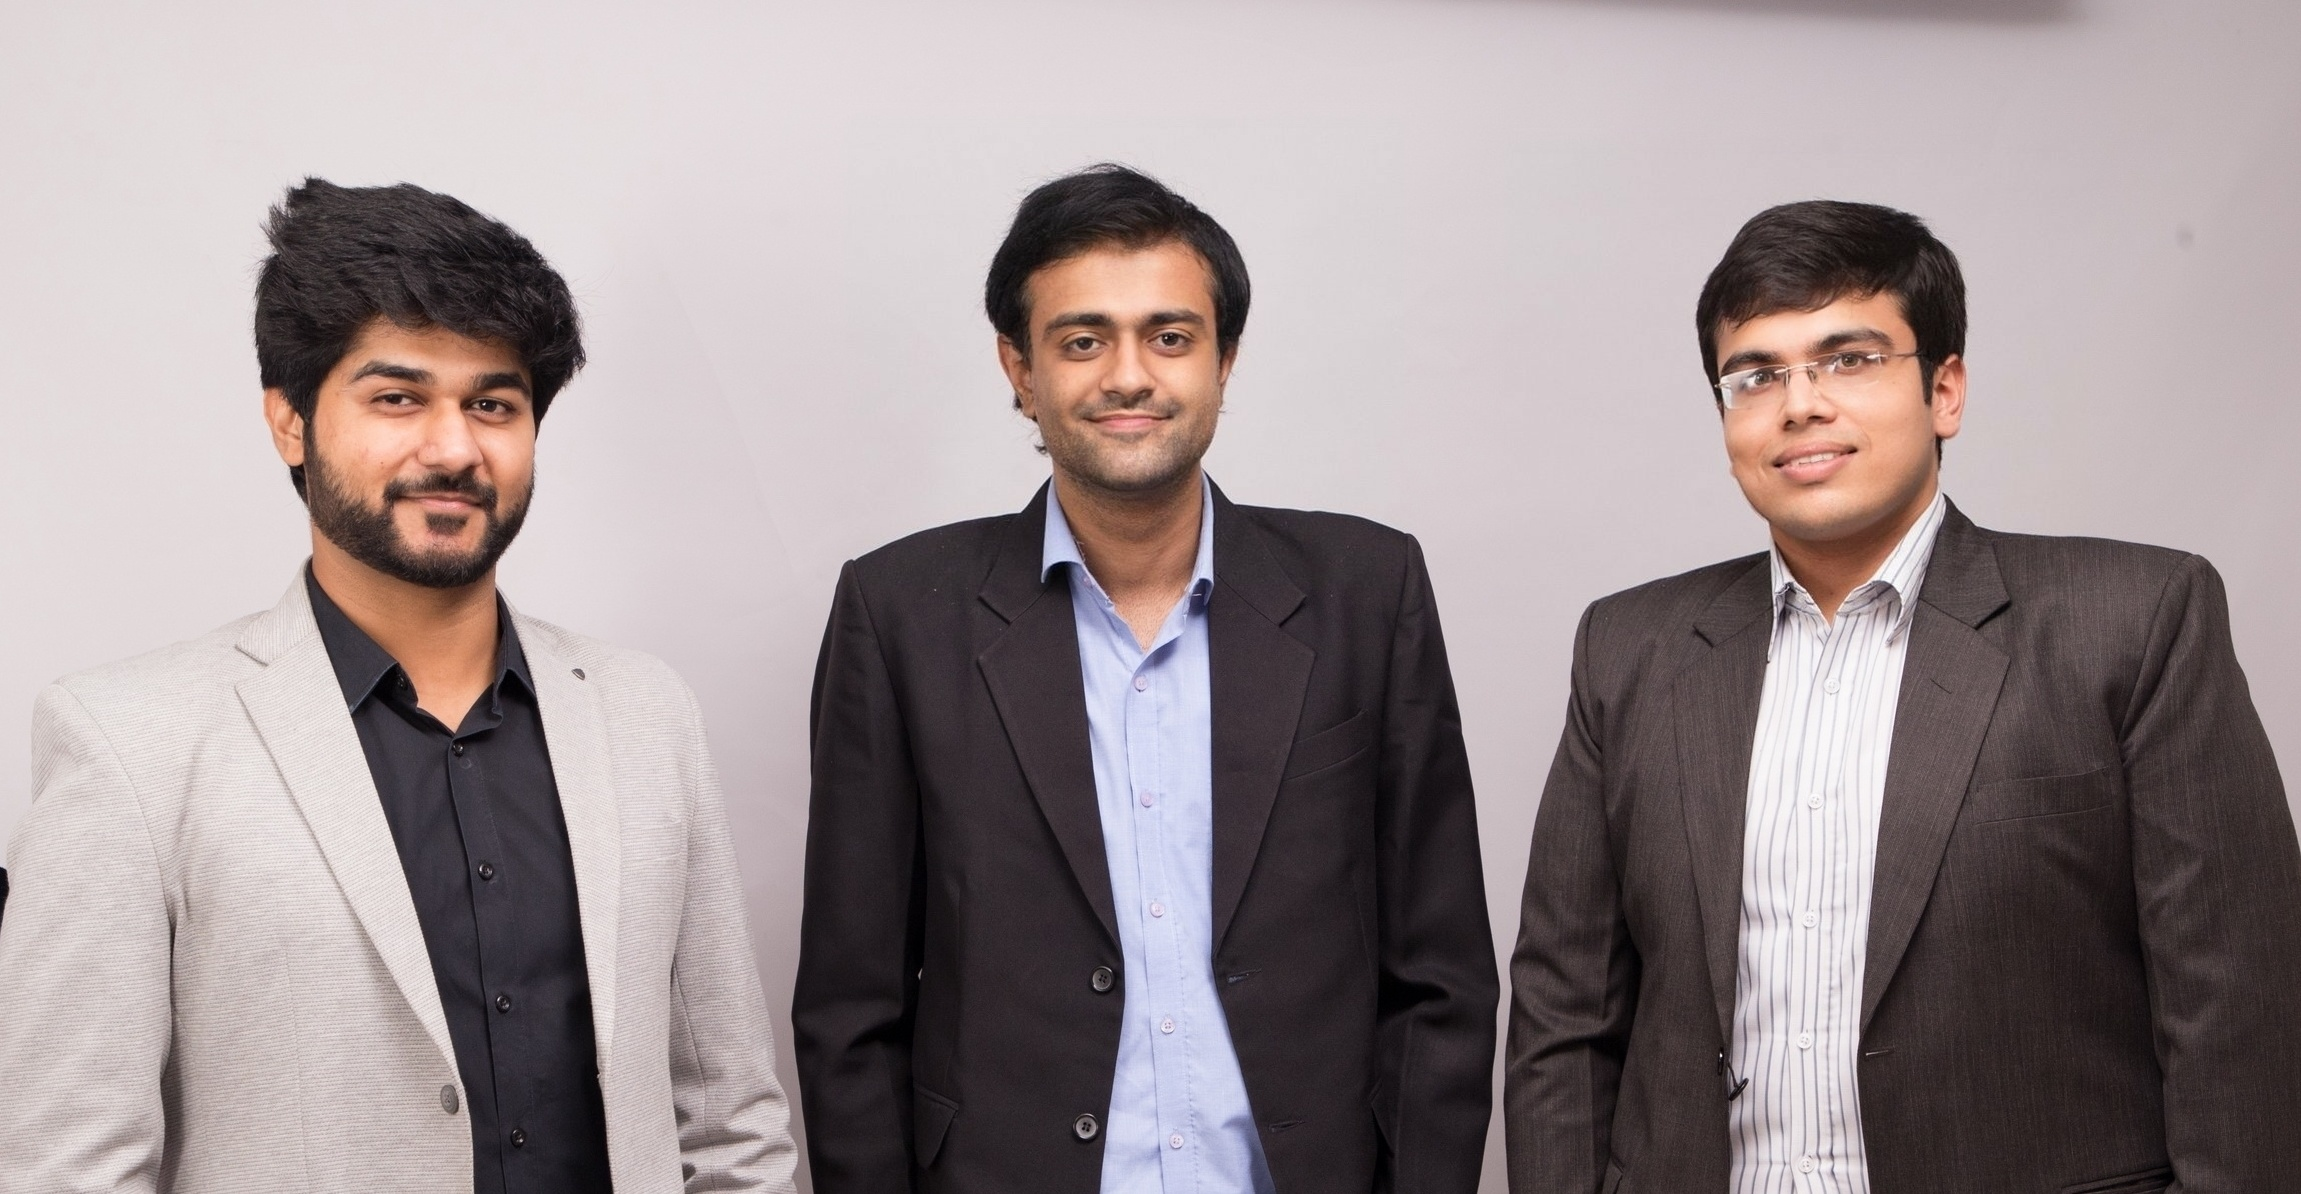 Debt Resolution Startup Credgenics to Add 100 Employees To Boost Growth